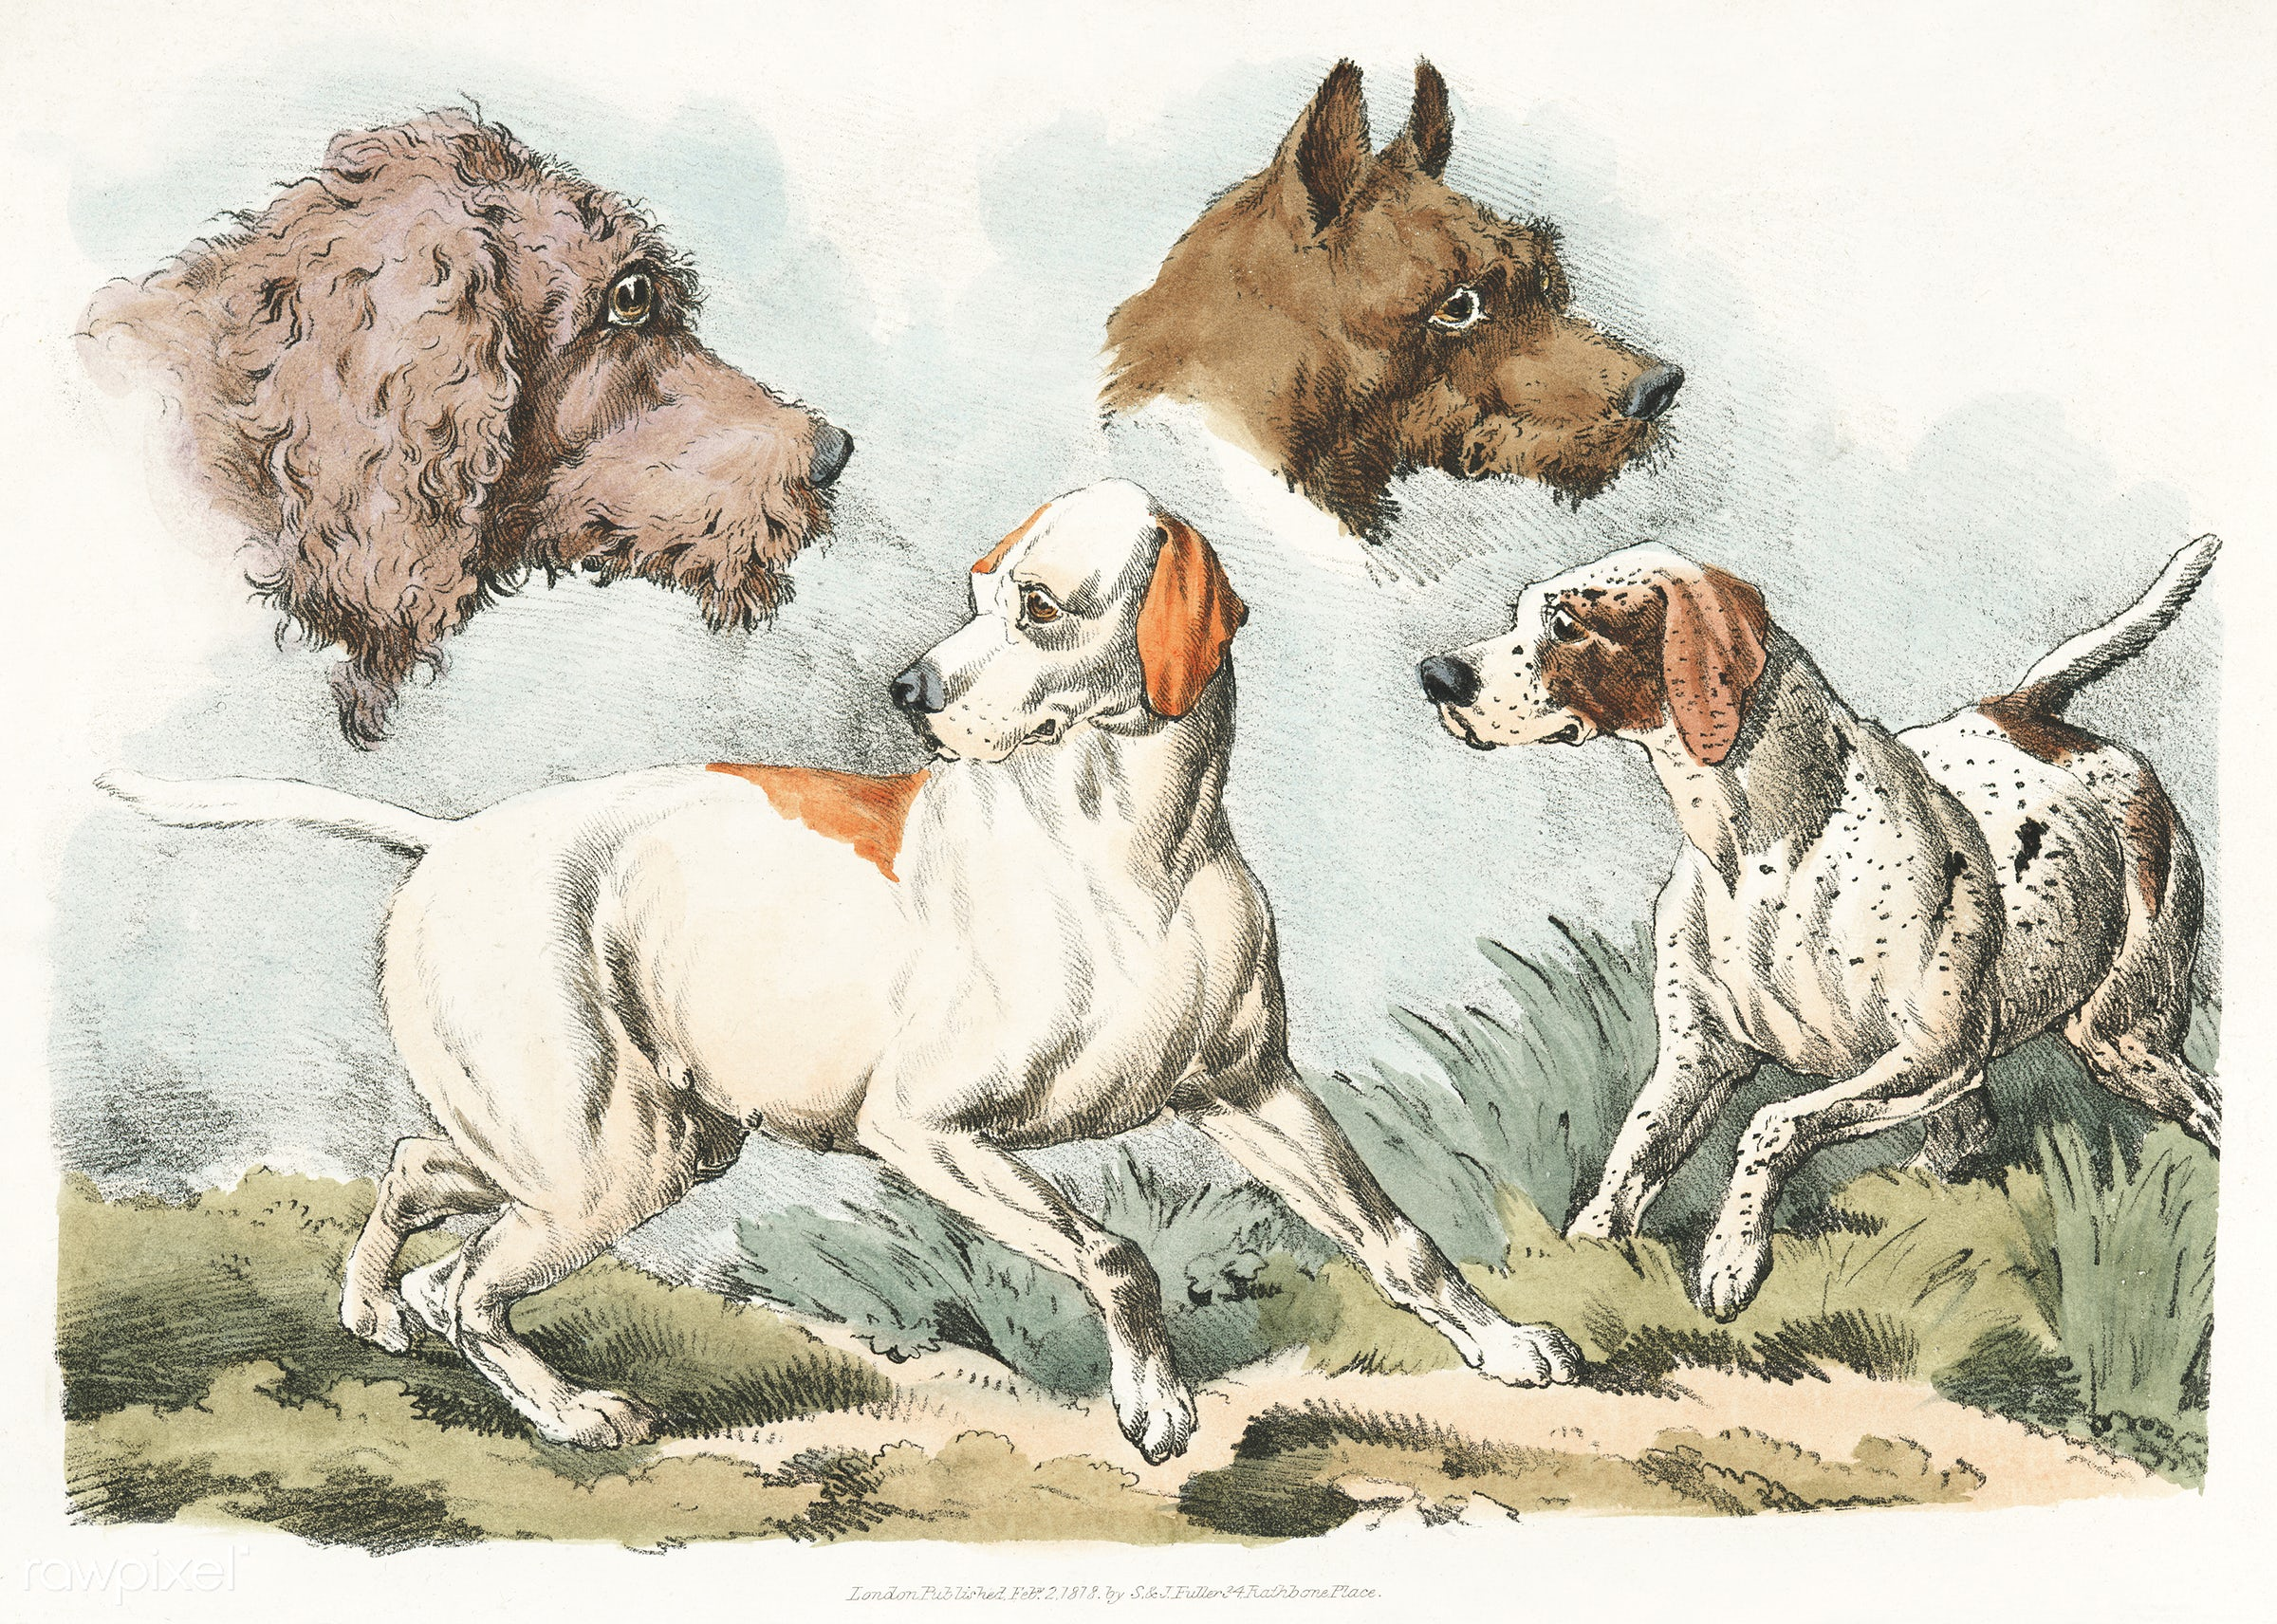 Illustration of two dogs and two dog heads from Sporting Sketches (1817-1818) by Henry Alken (1784-1851). - animal, antique...